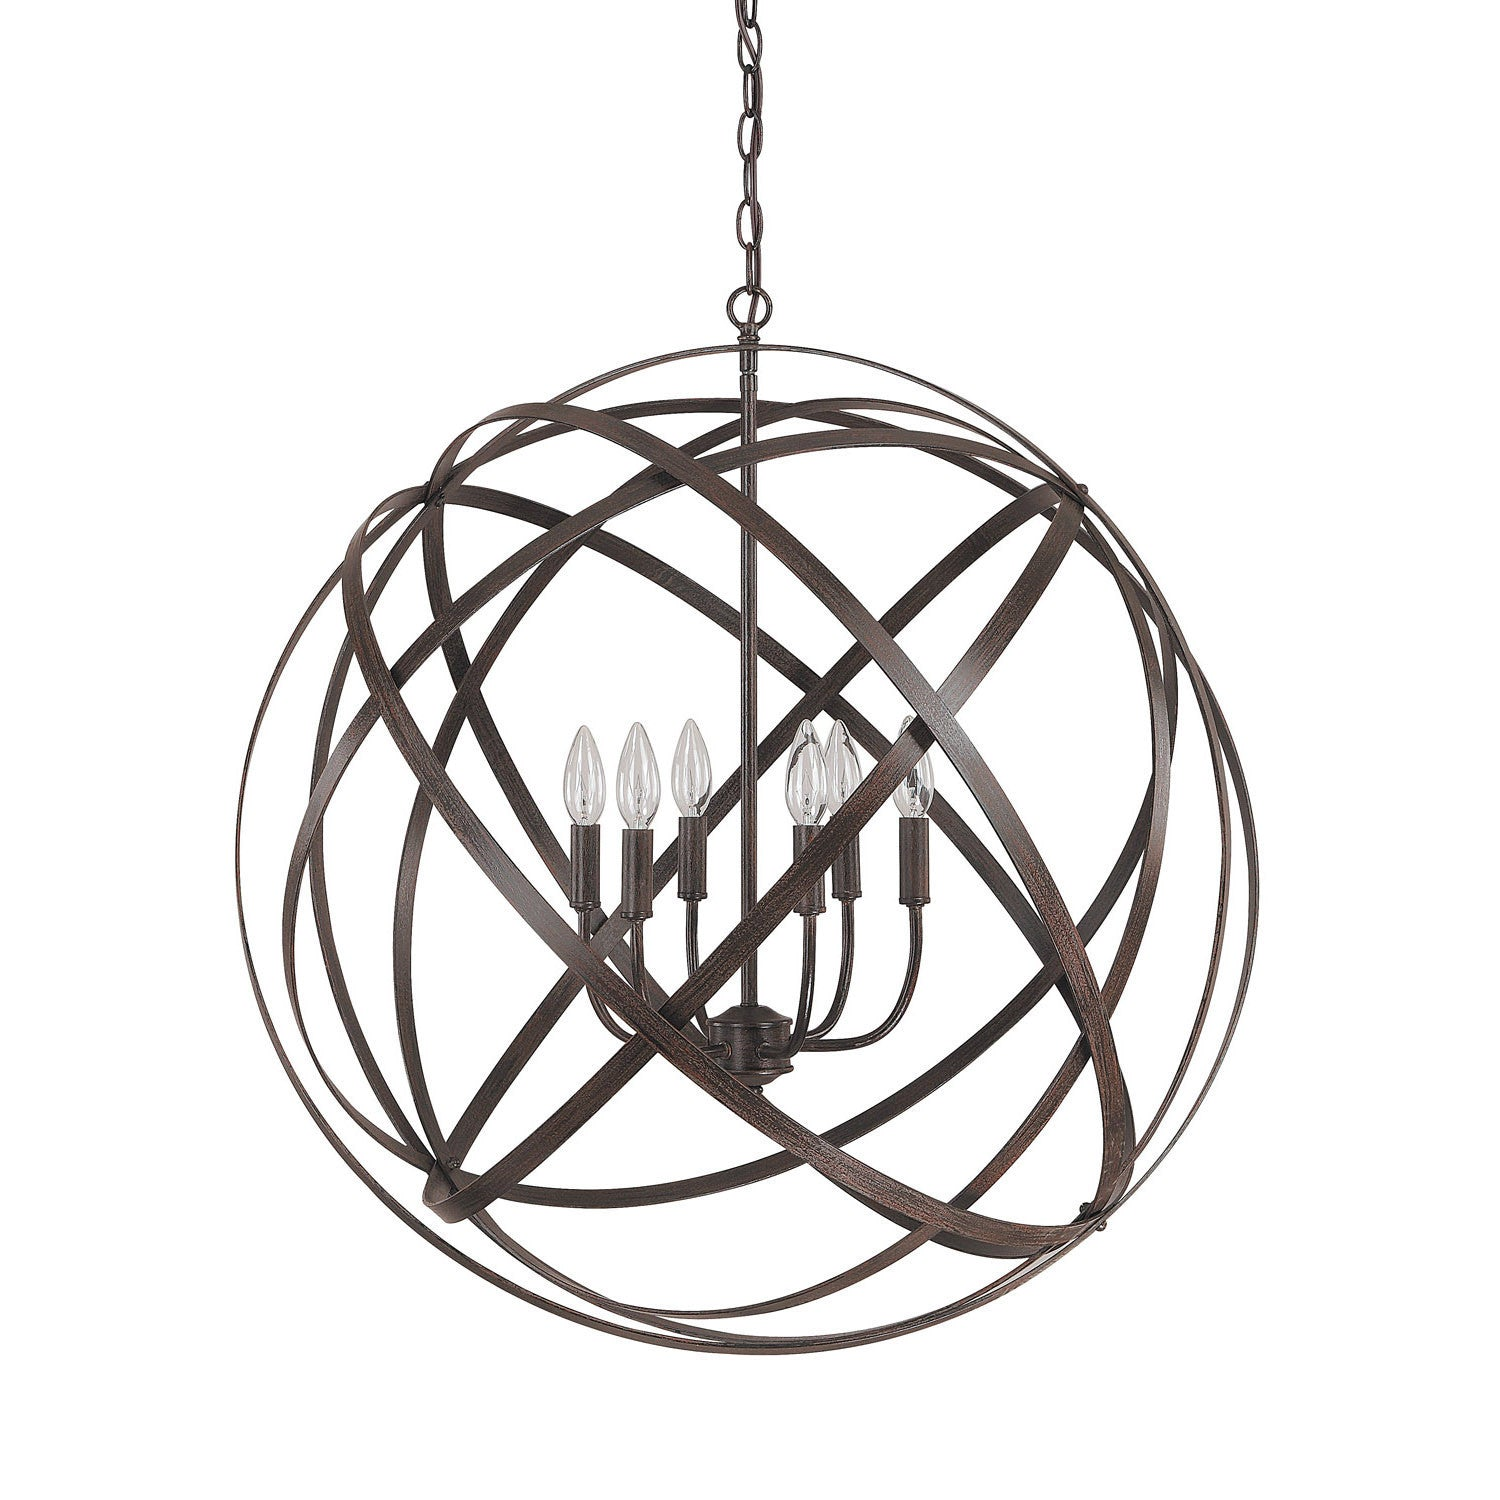 Axis 6 Light Orb Chandelier in Russet Bronze by Capital Lighting 4233RS